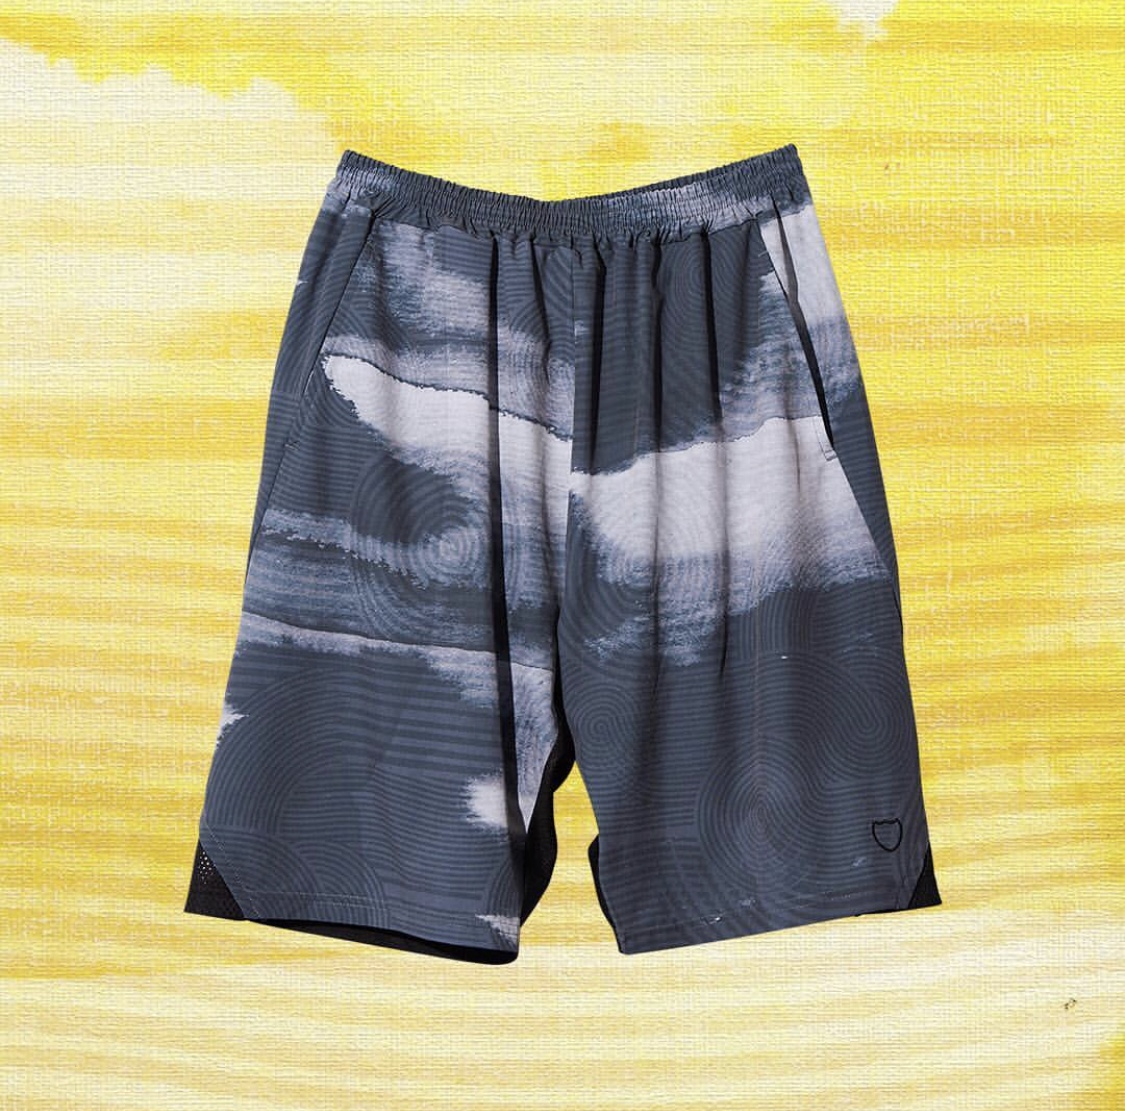 AKTR RIPPLE FLOW SHORTS BLACKのイメージ